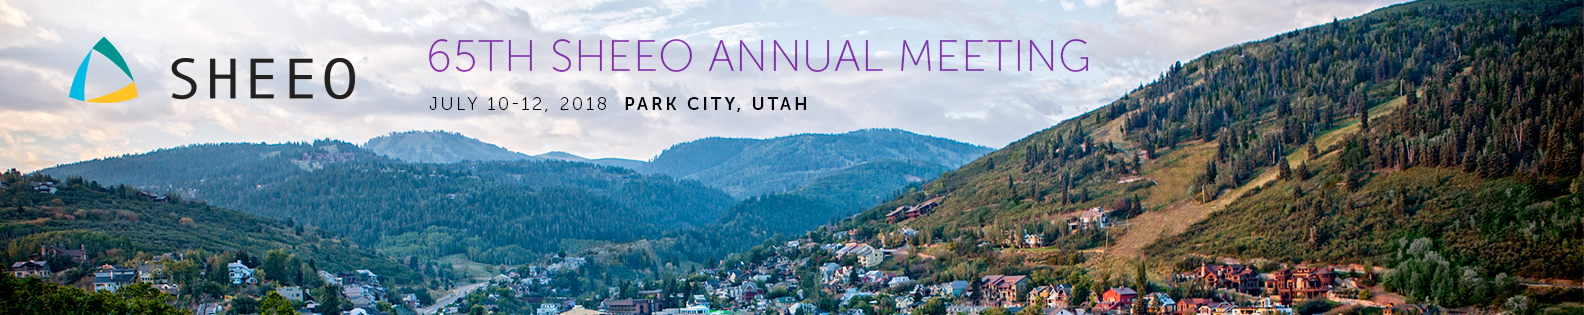 65th SHEEO Annual Meeting